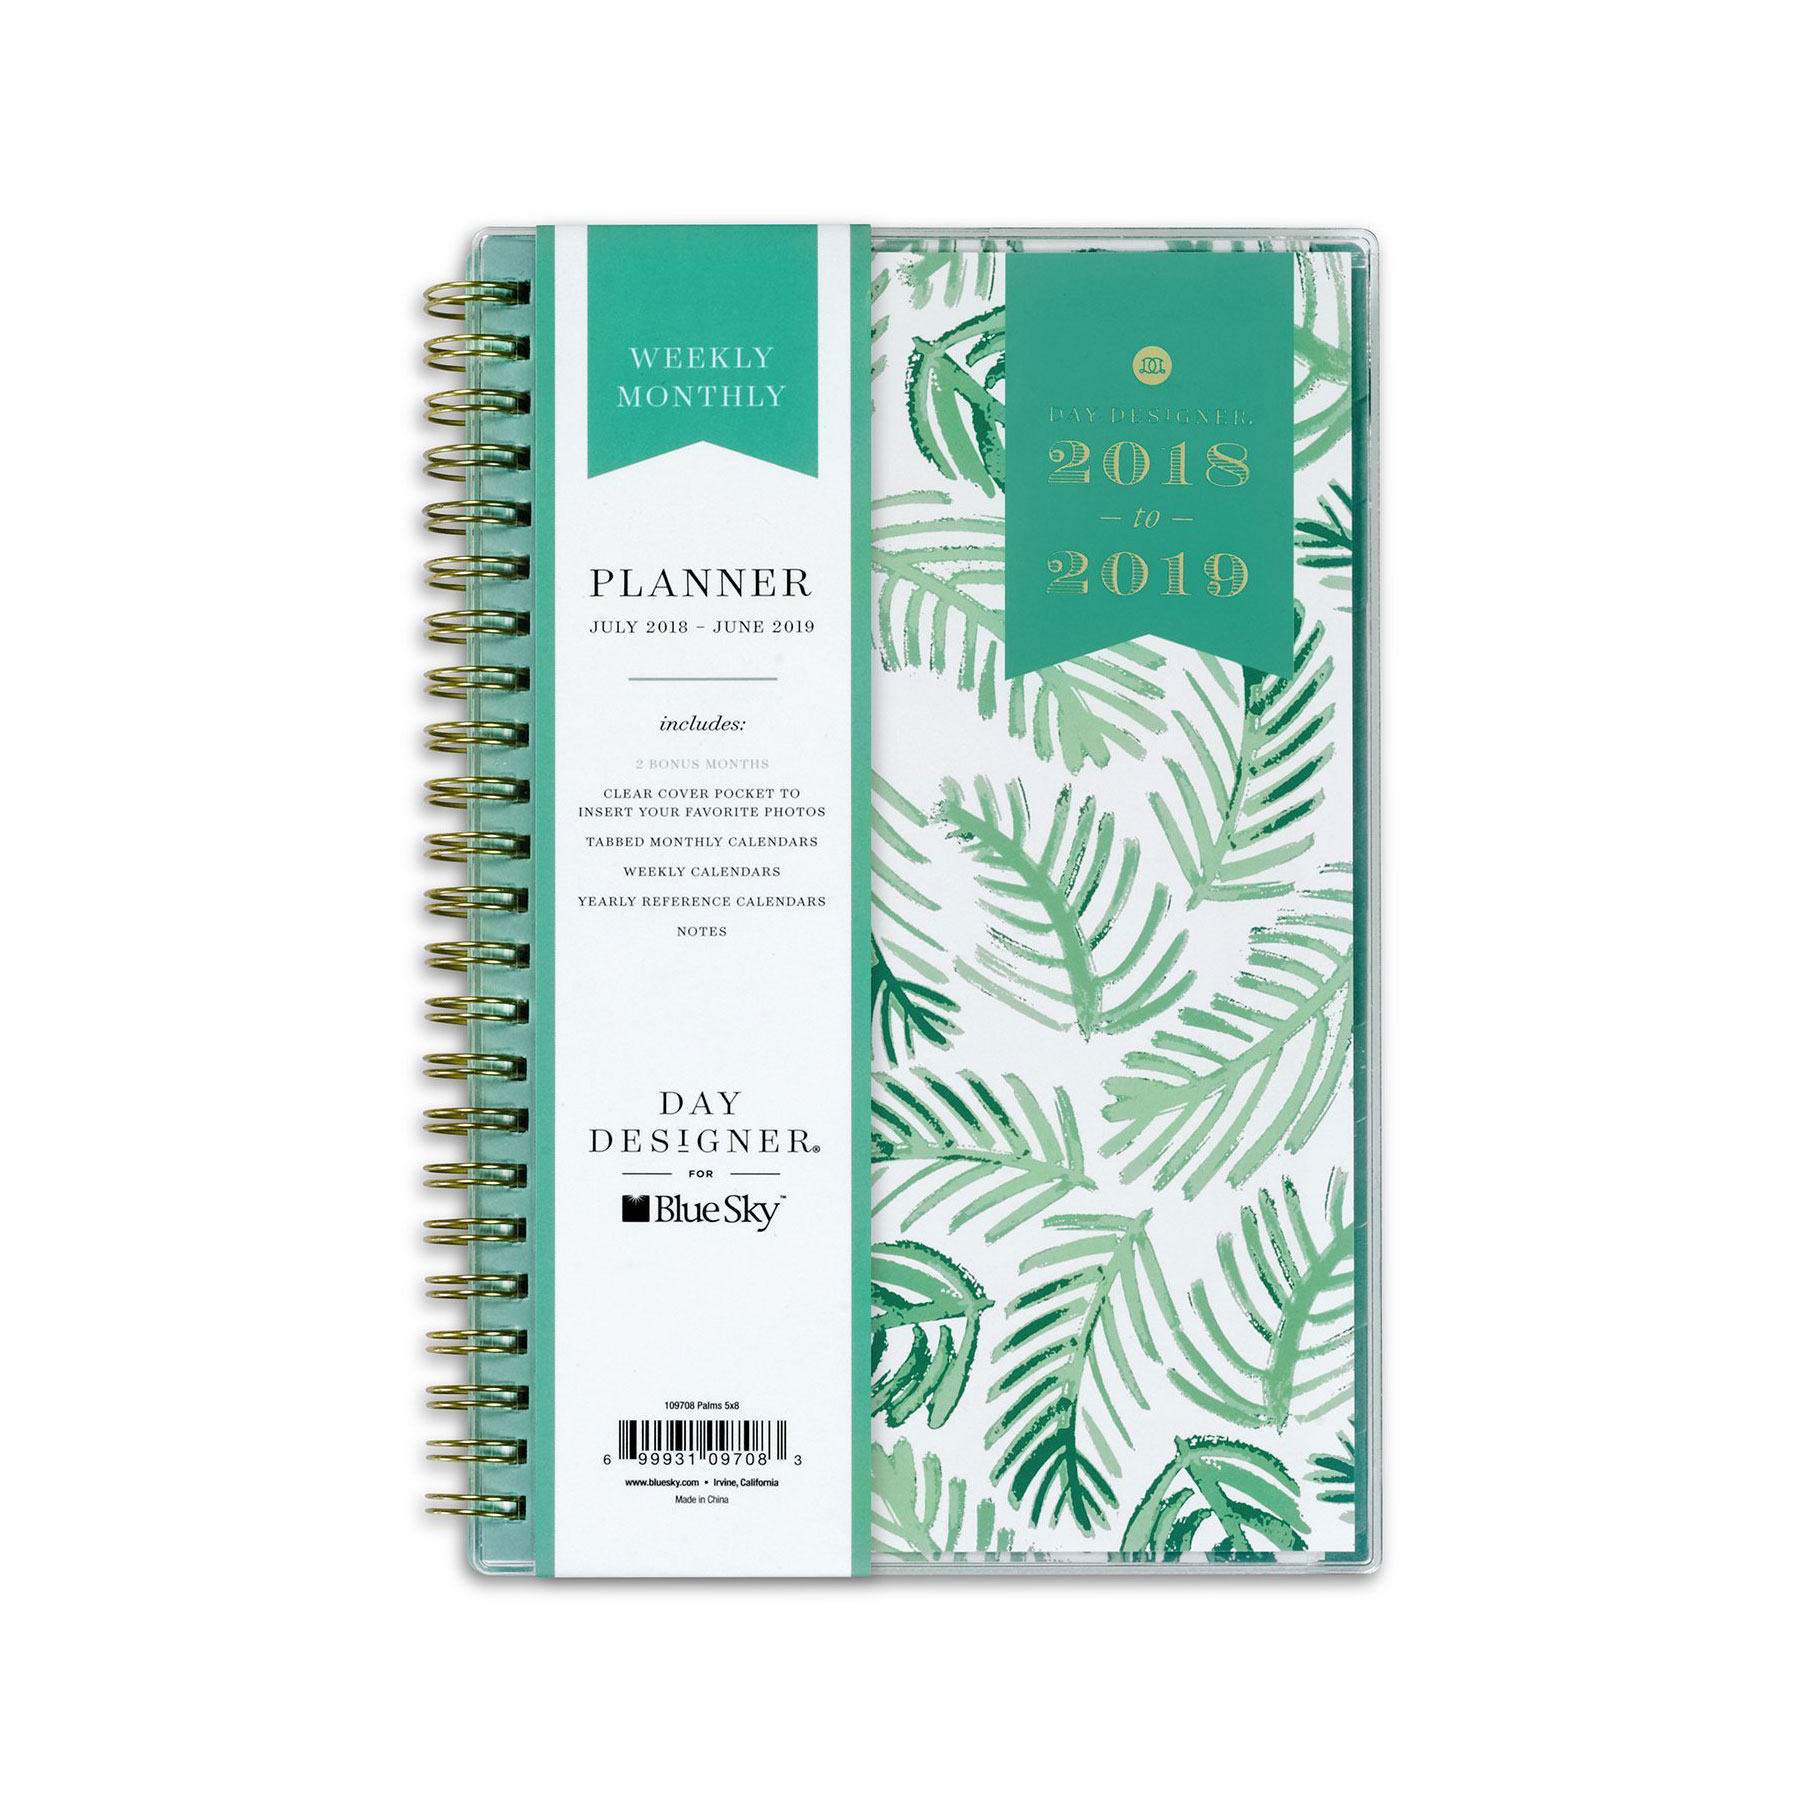 Day Designer Academic Year Planner